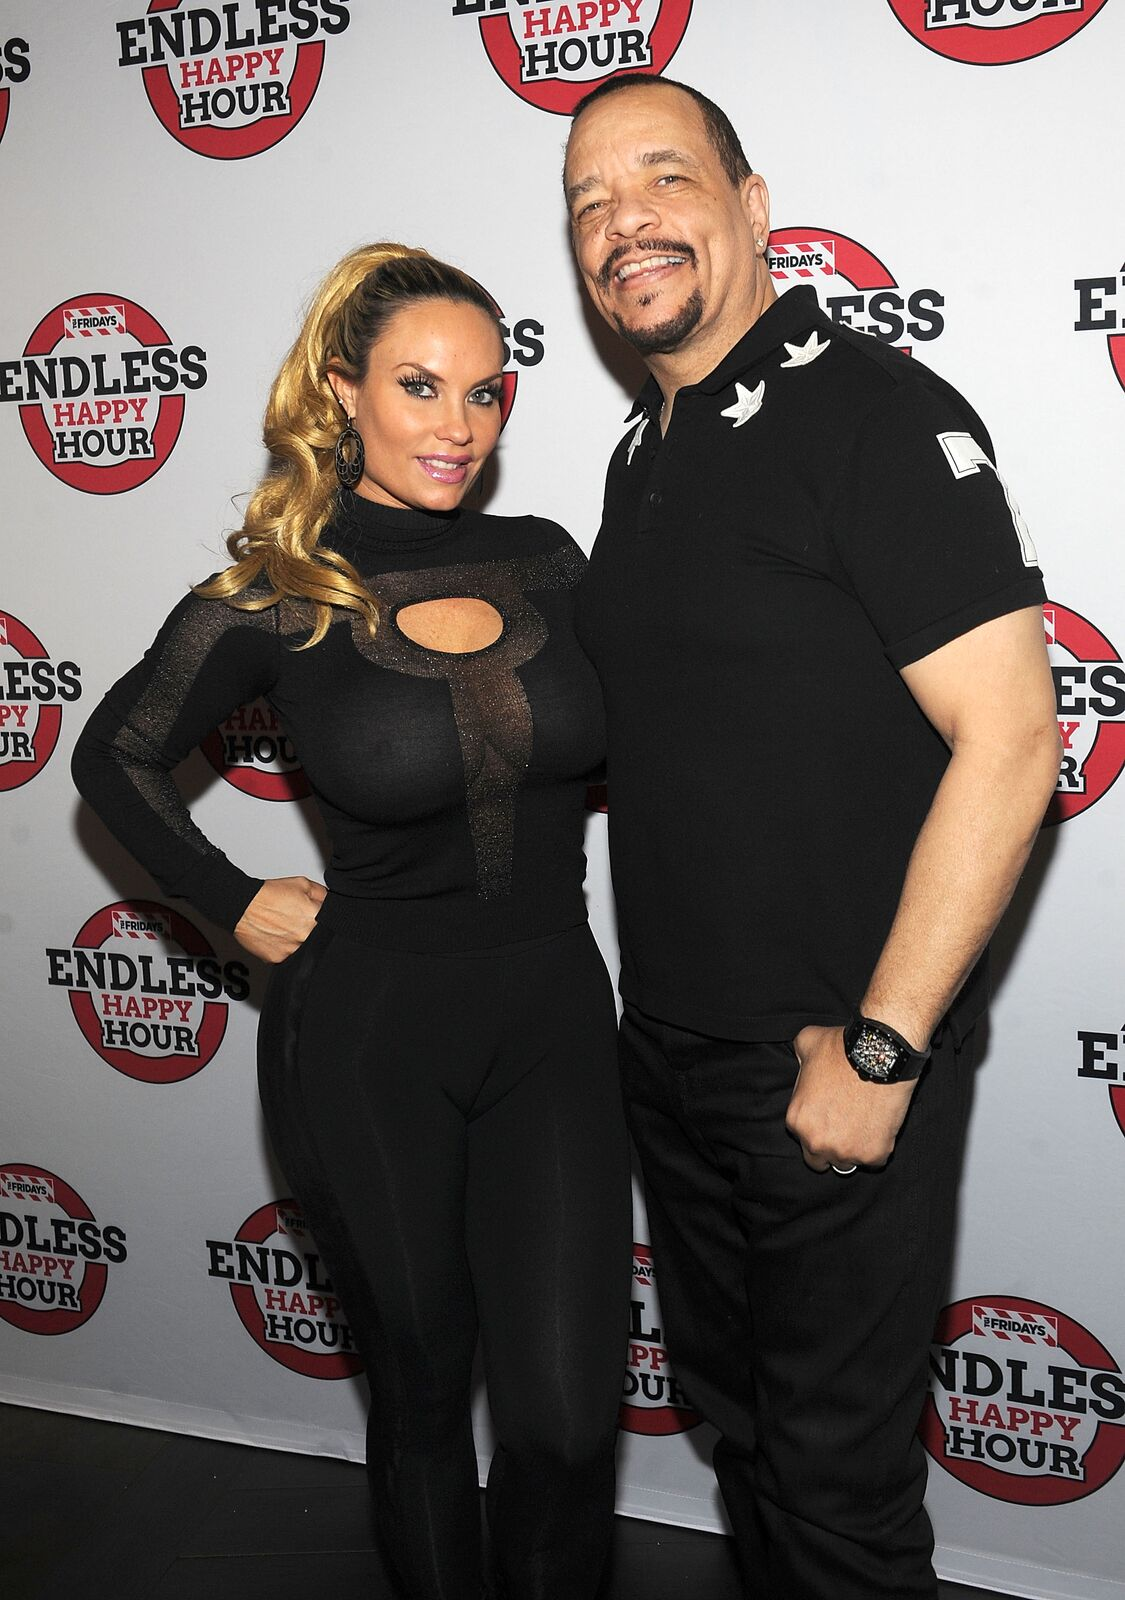 Coco Austin and Ice-T attend the TGI Fridays Endless Happy Hour With Ice-T TGI Fridays on March 3, 2017 in New York City. | Photo: Getty Images